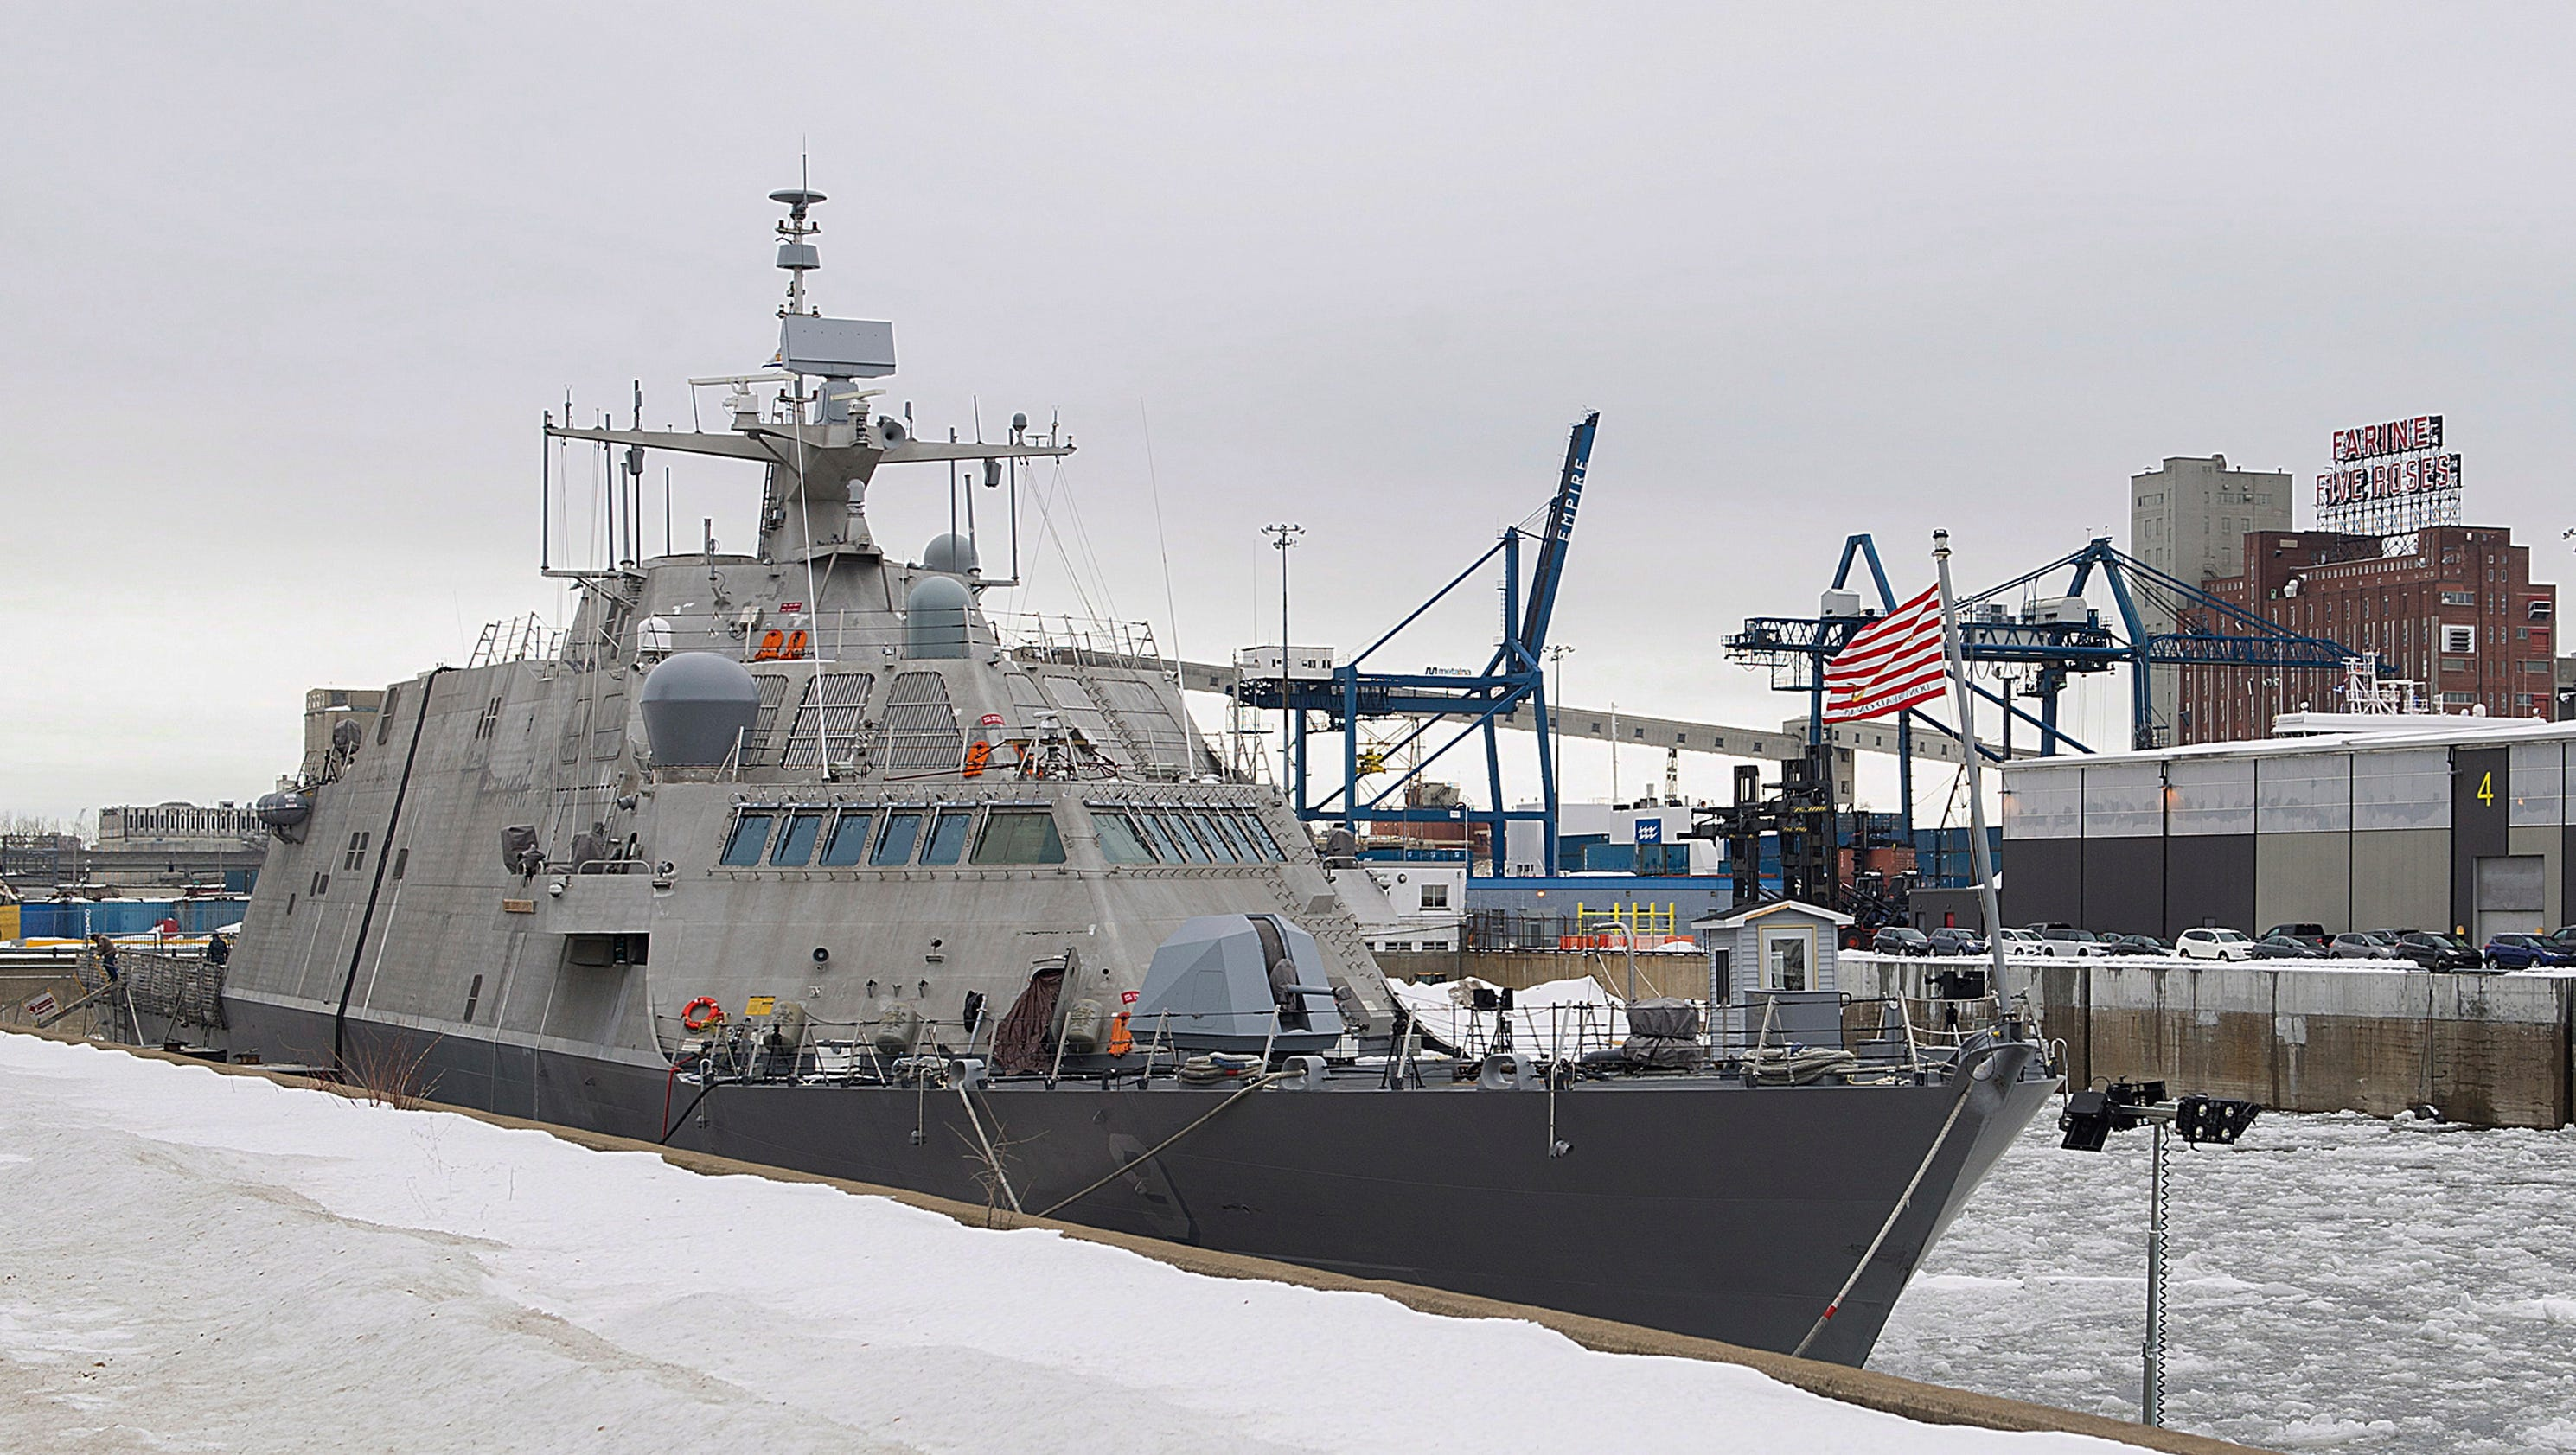 Marinette Built Navy Ship Uss Little Rock Stuck In The Ice